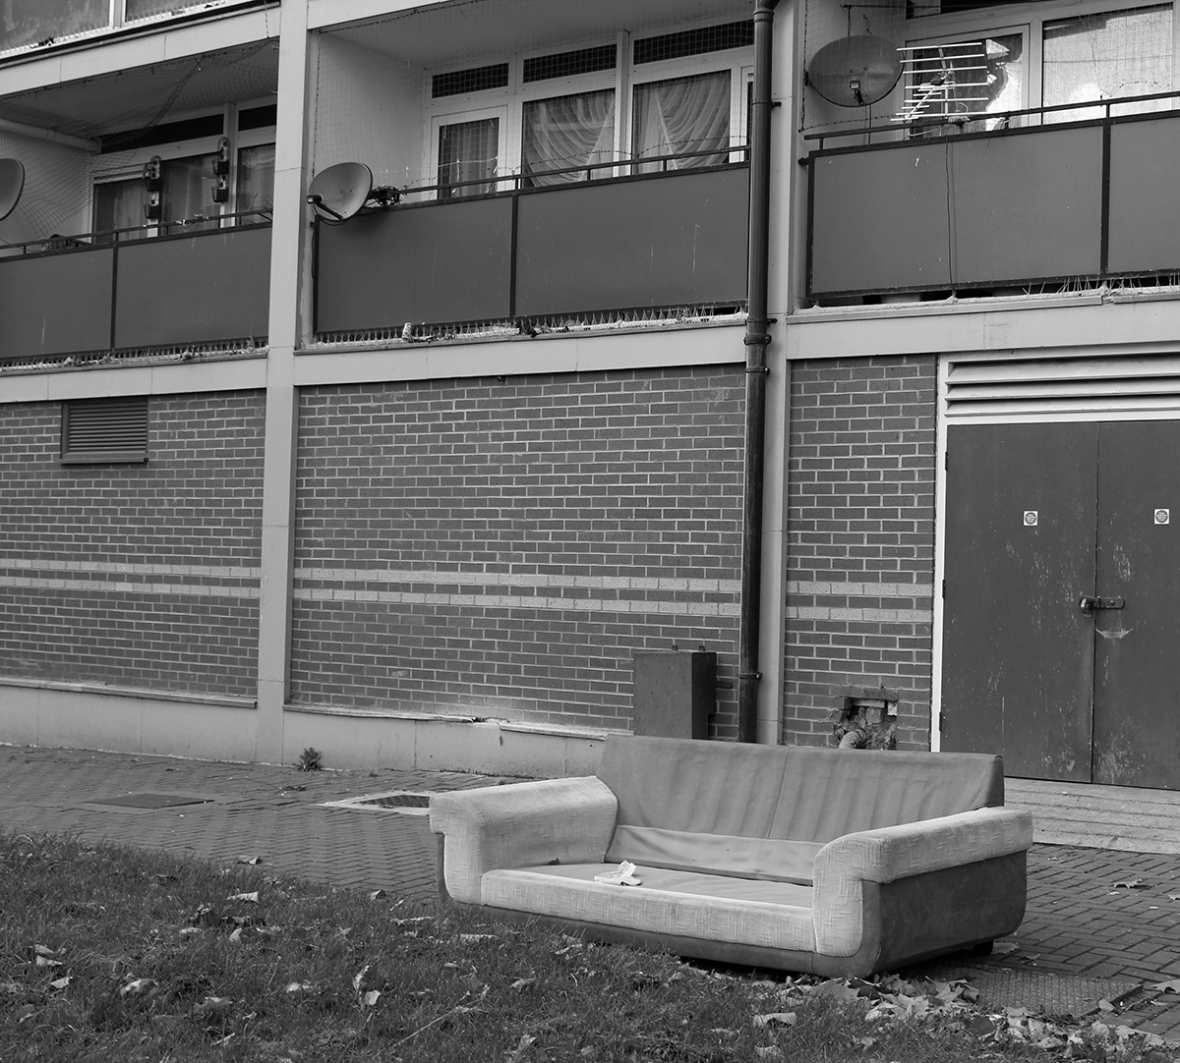 """Harri Lewis (Untitled) 2016 """"This is my collection of images taken in the Hillfields area of Coventry, typically this area is quite a deprived area of the city and I think my images reflect the human impressions left around this particular area showing how people live and how they have left these places after residing""""."""